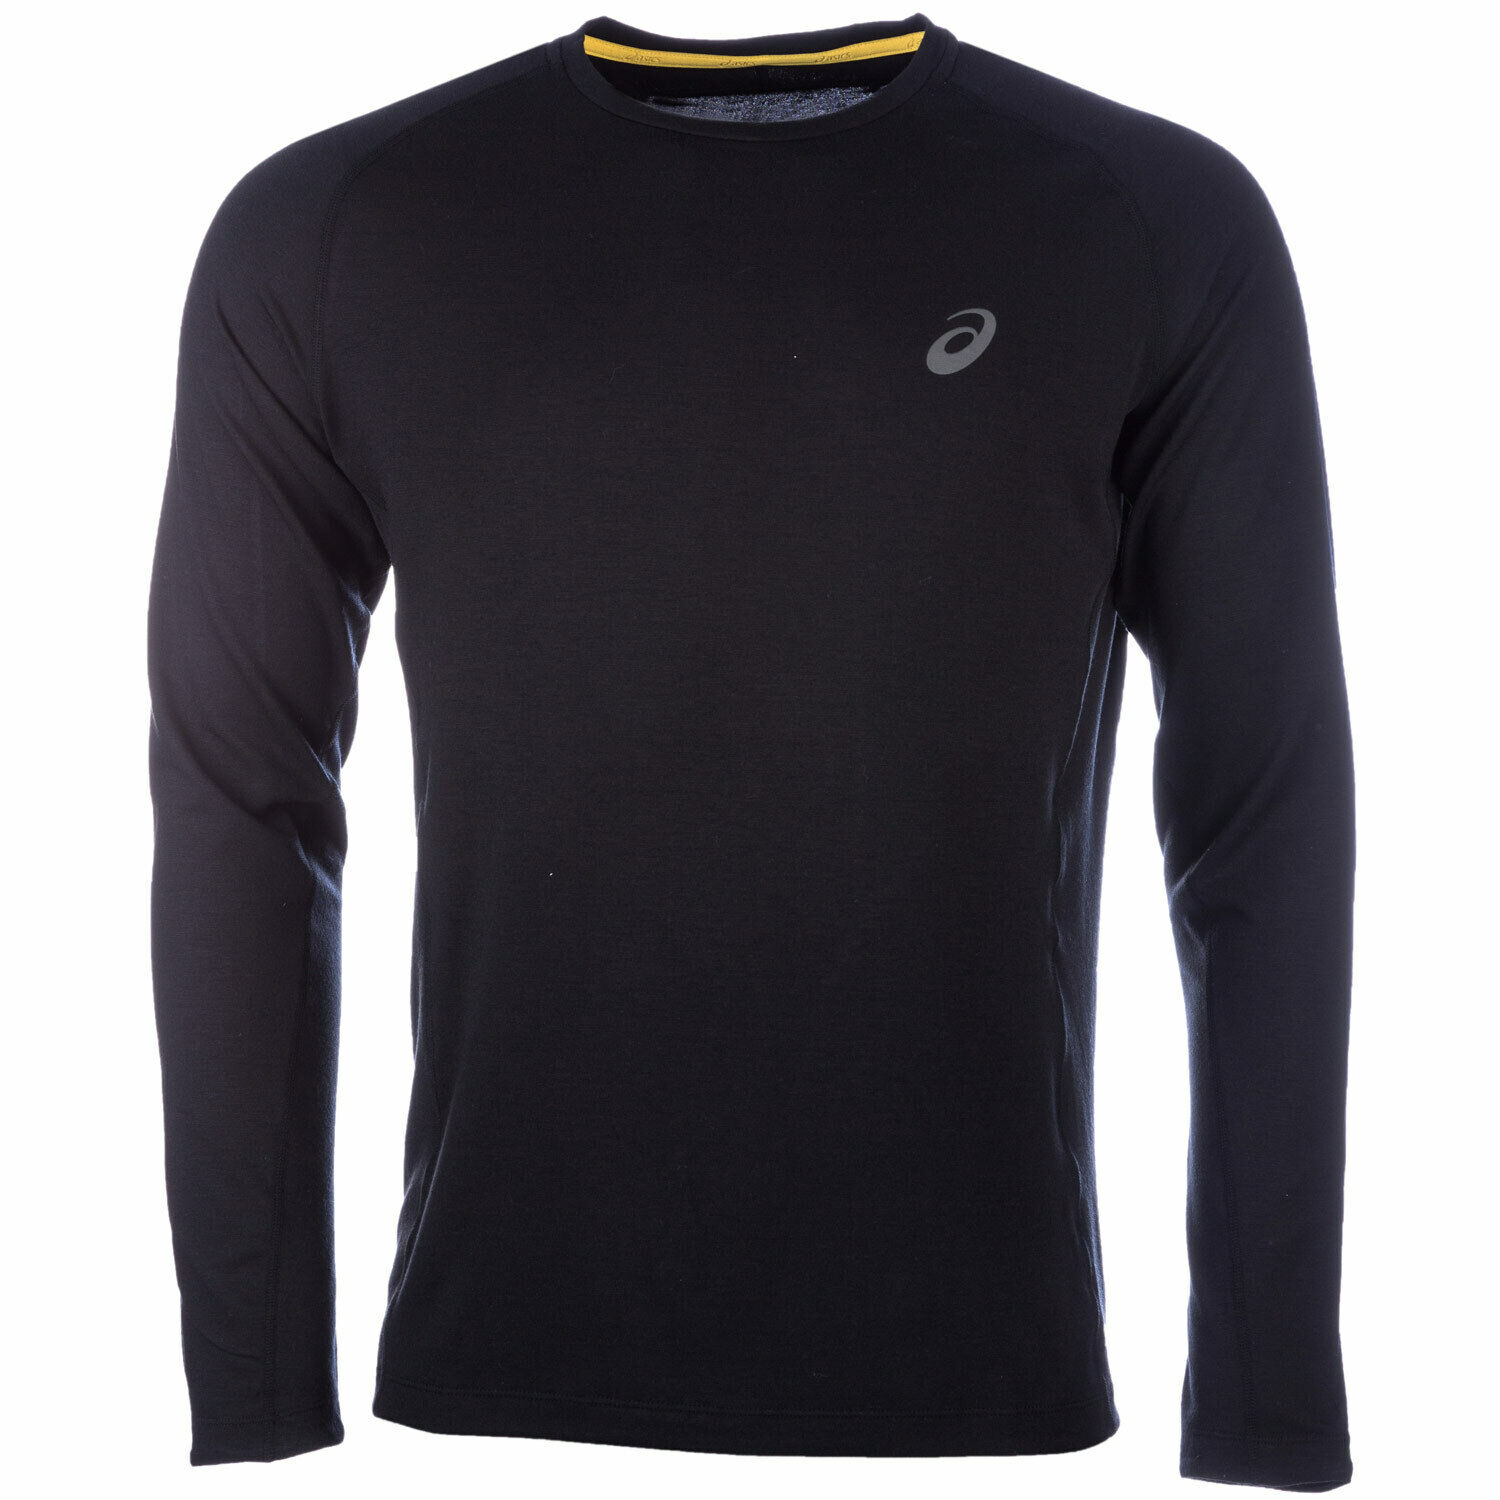 Asics Mens Fujitrail Baselayer Size XXL Black Colour Unopened Package